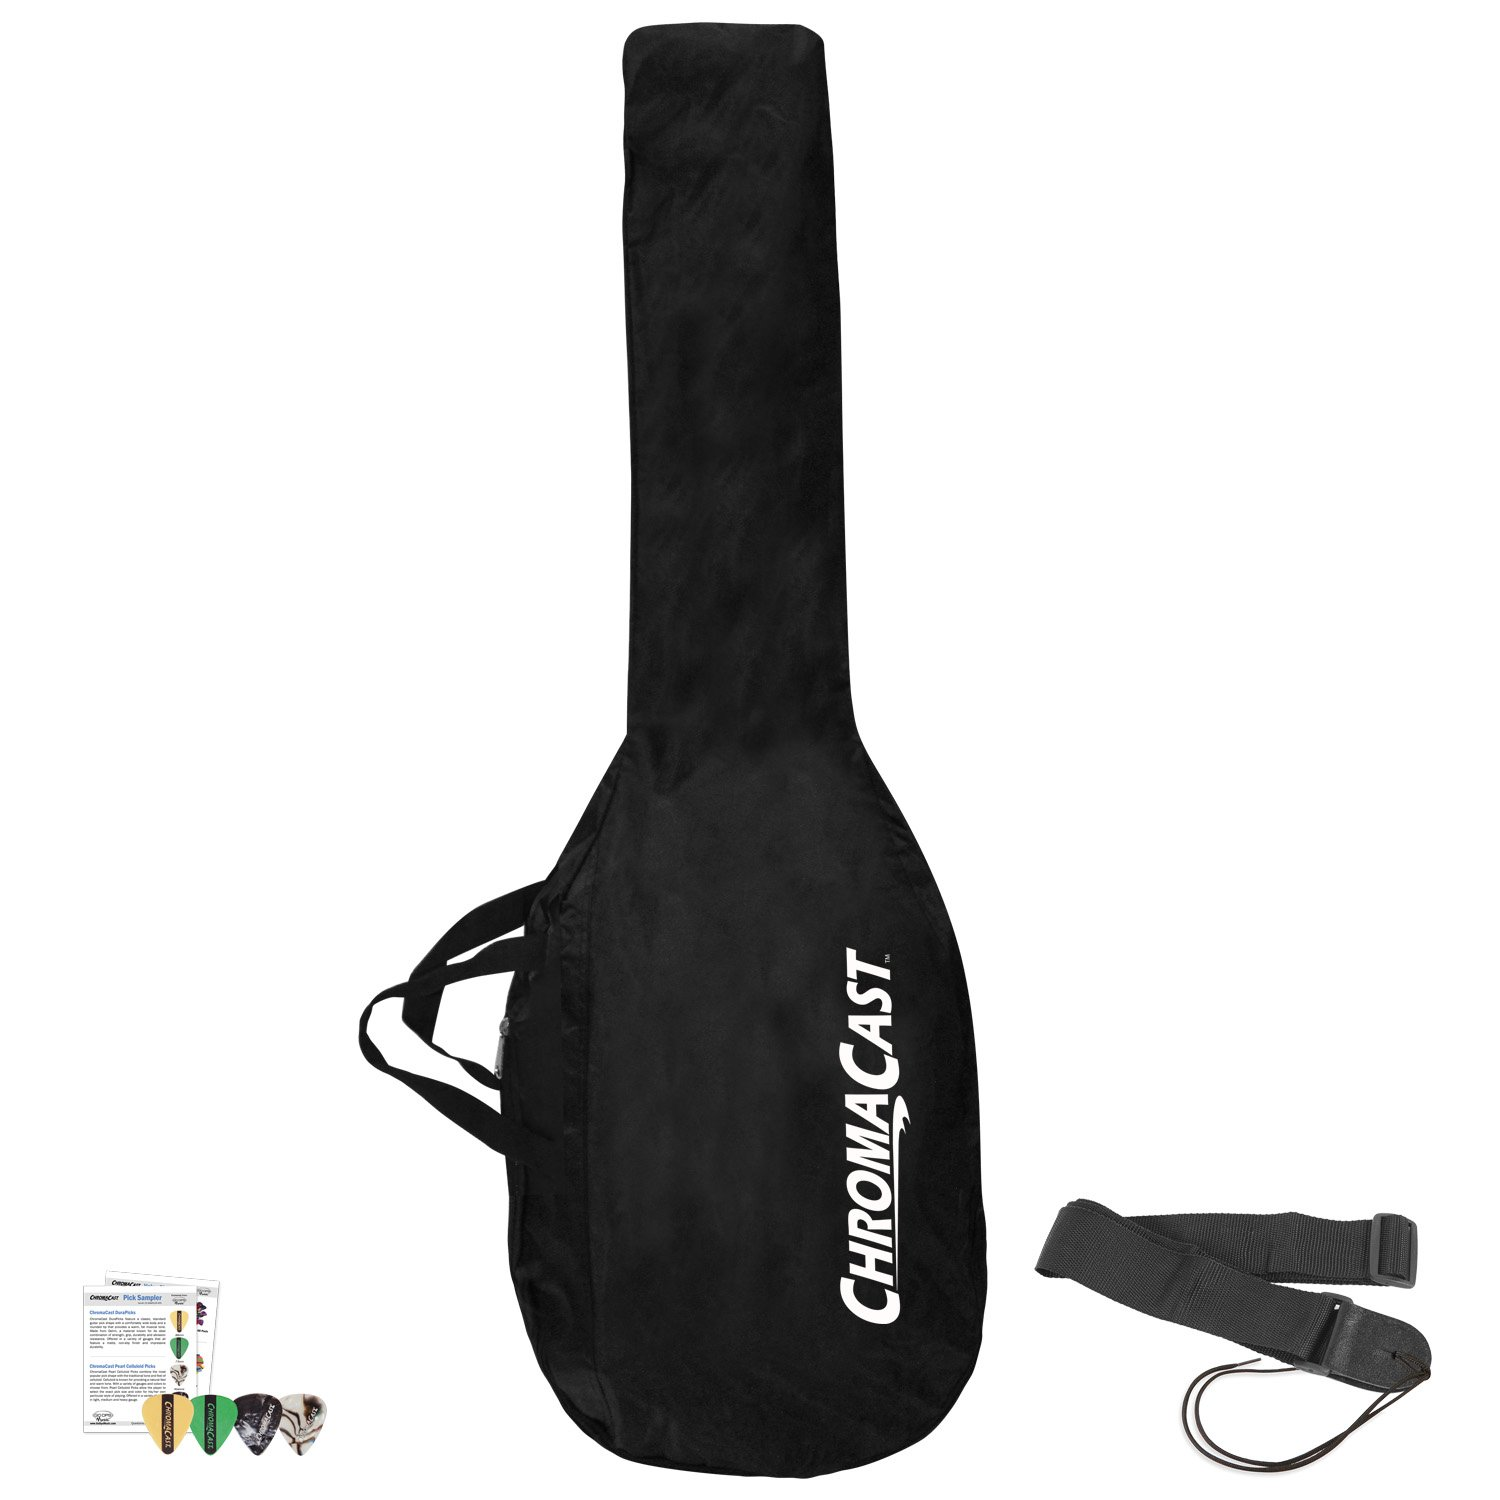 Cheap ChromaCast JB-E-NYLON-P Water Resistant Nylon Electric Guitar Bag and Strap with 4 Pick Sampler Black Friday & Cyber Monday 2019